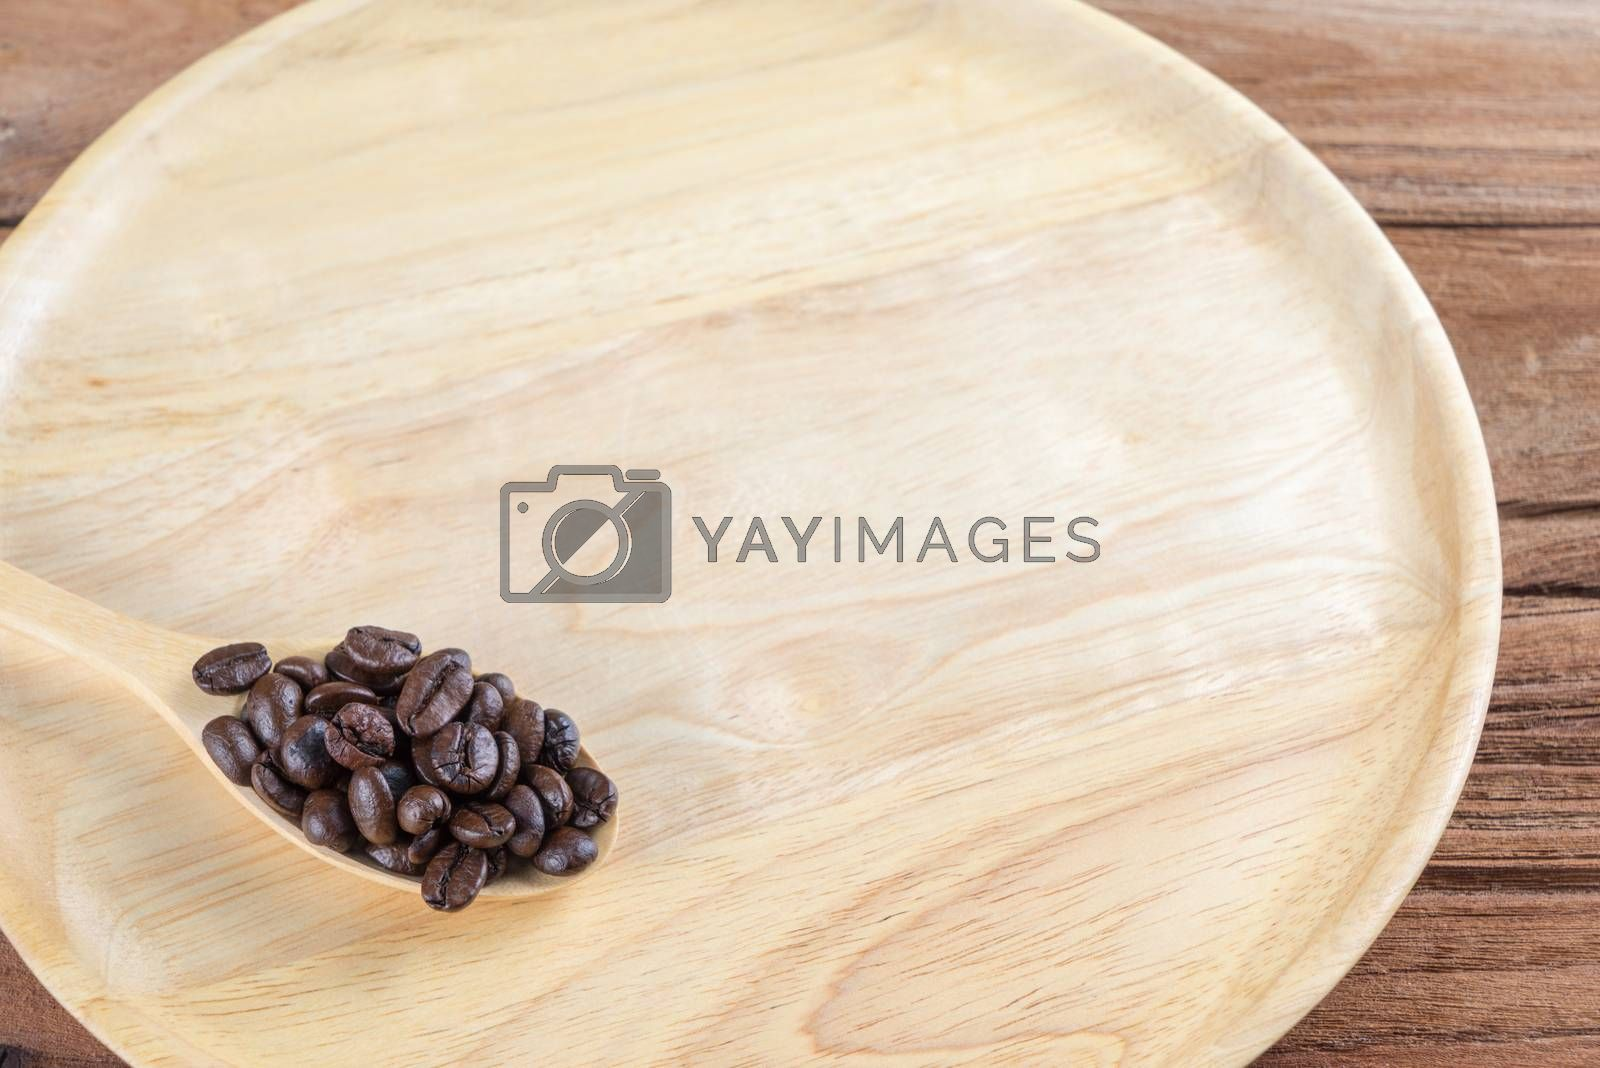 Royalty free image of Coffee bean on wooden spoon, dish, table background by iamway